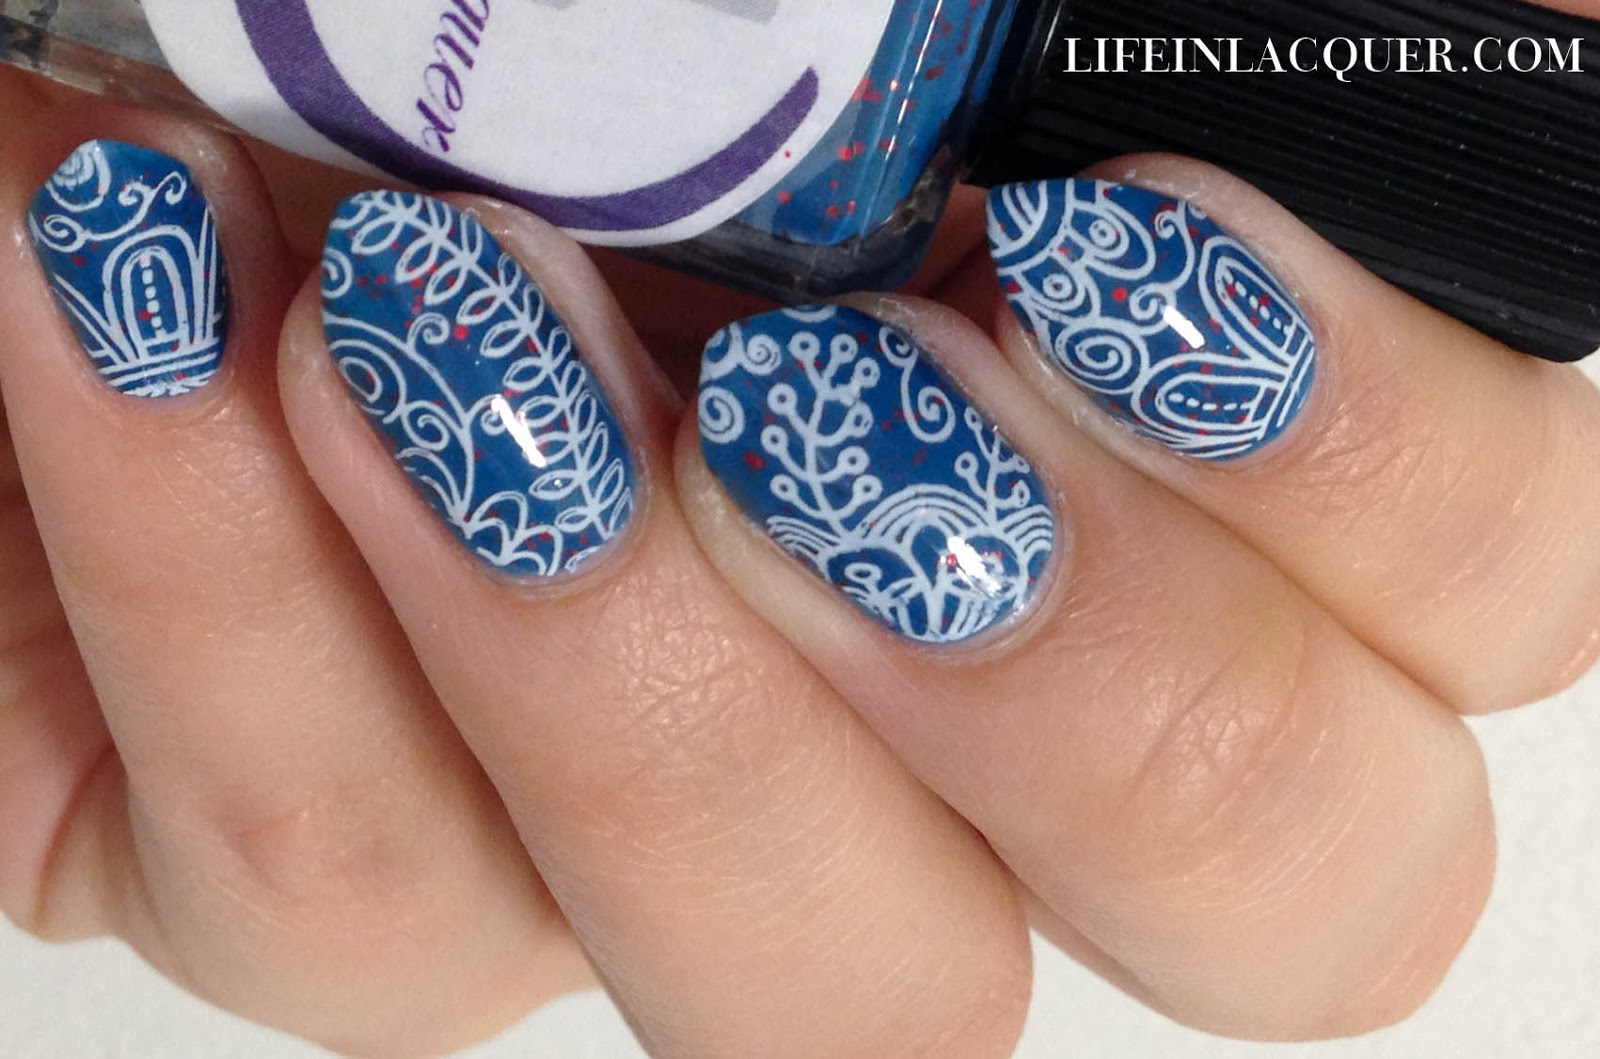 Seek the Fire Stamping Nail Art cadillacquer indie